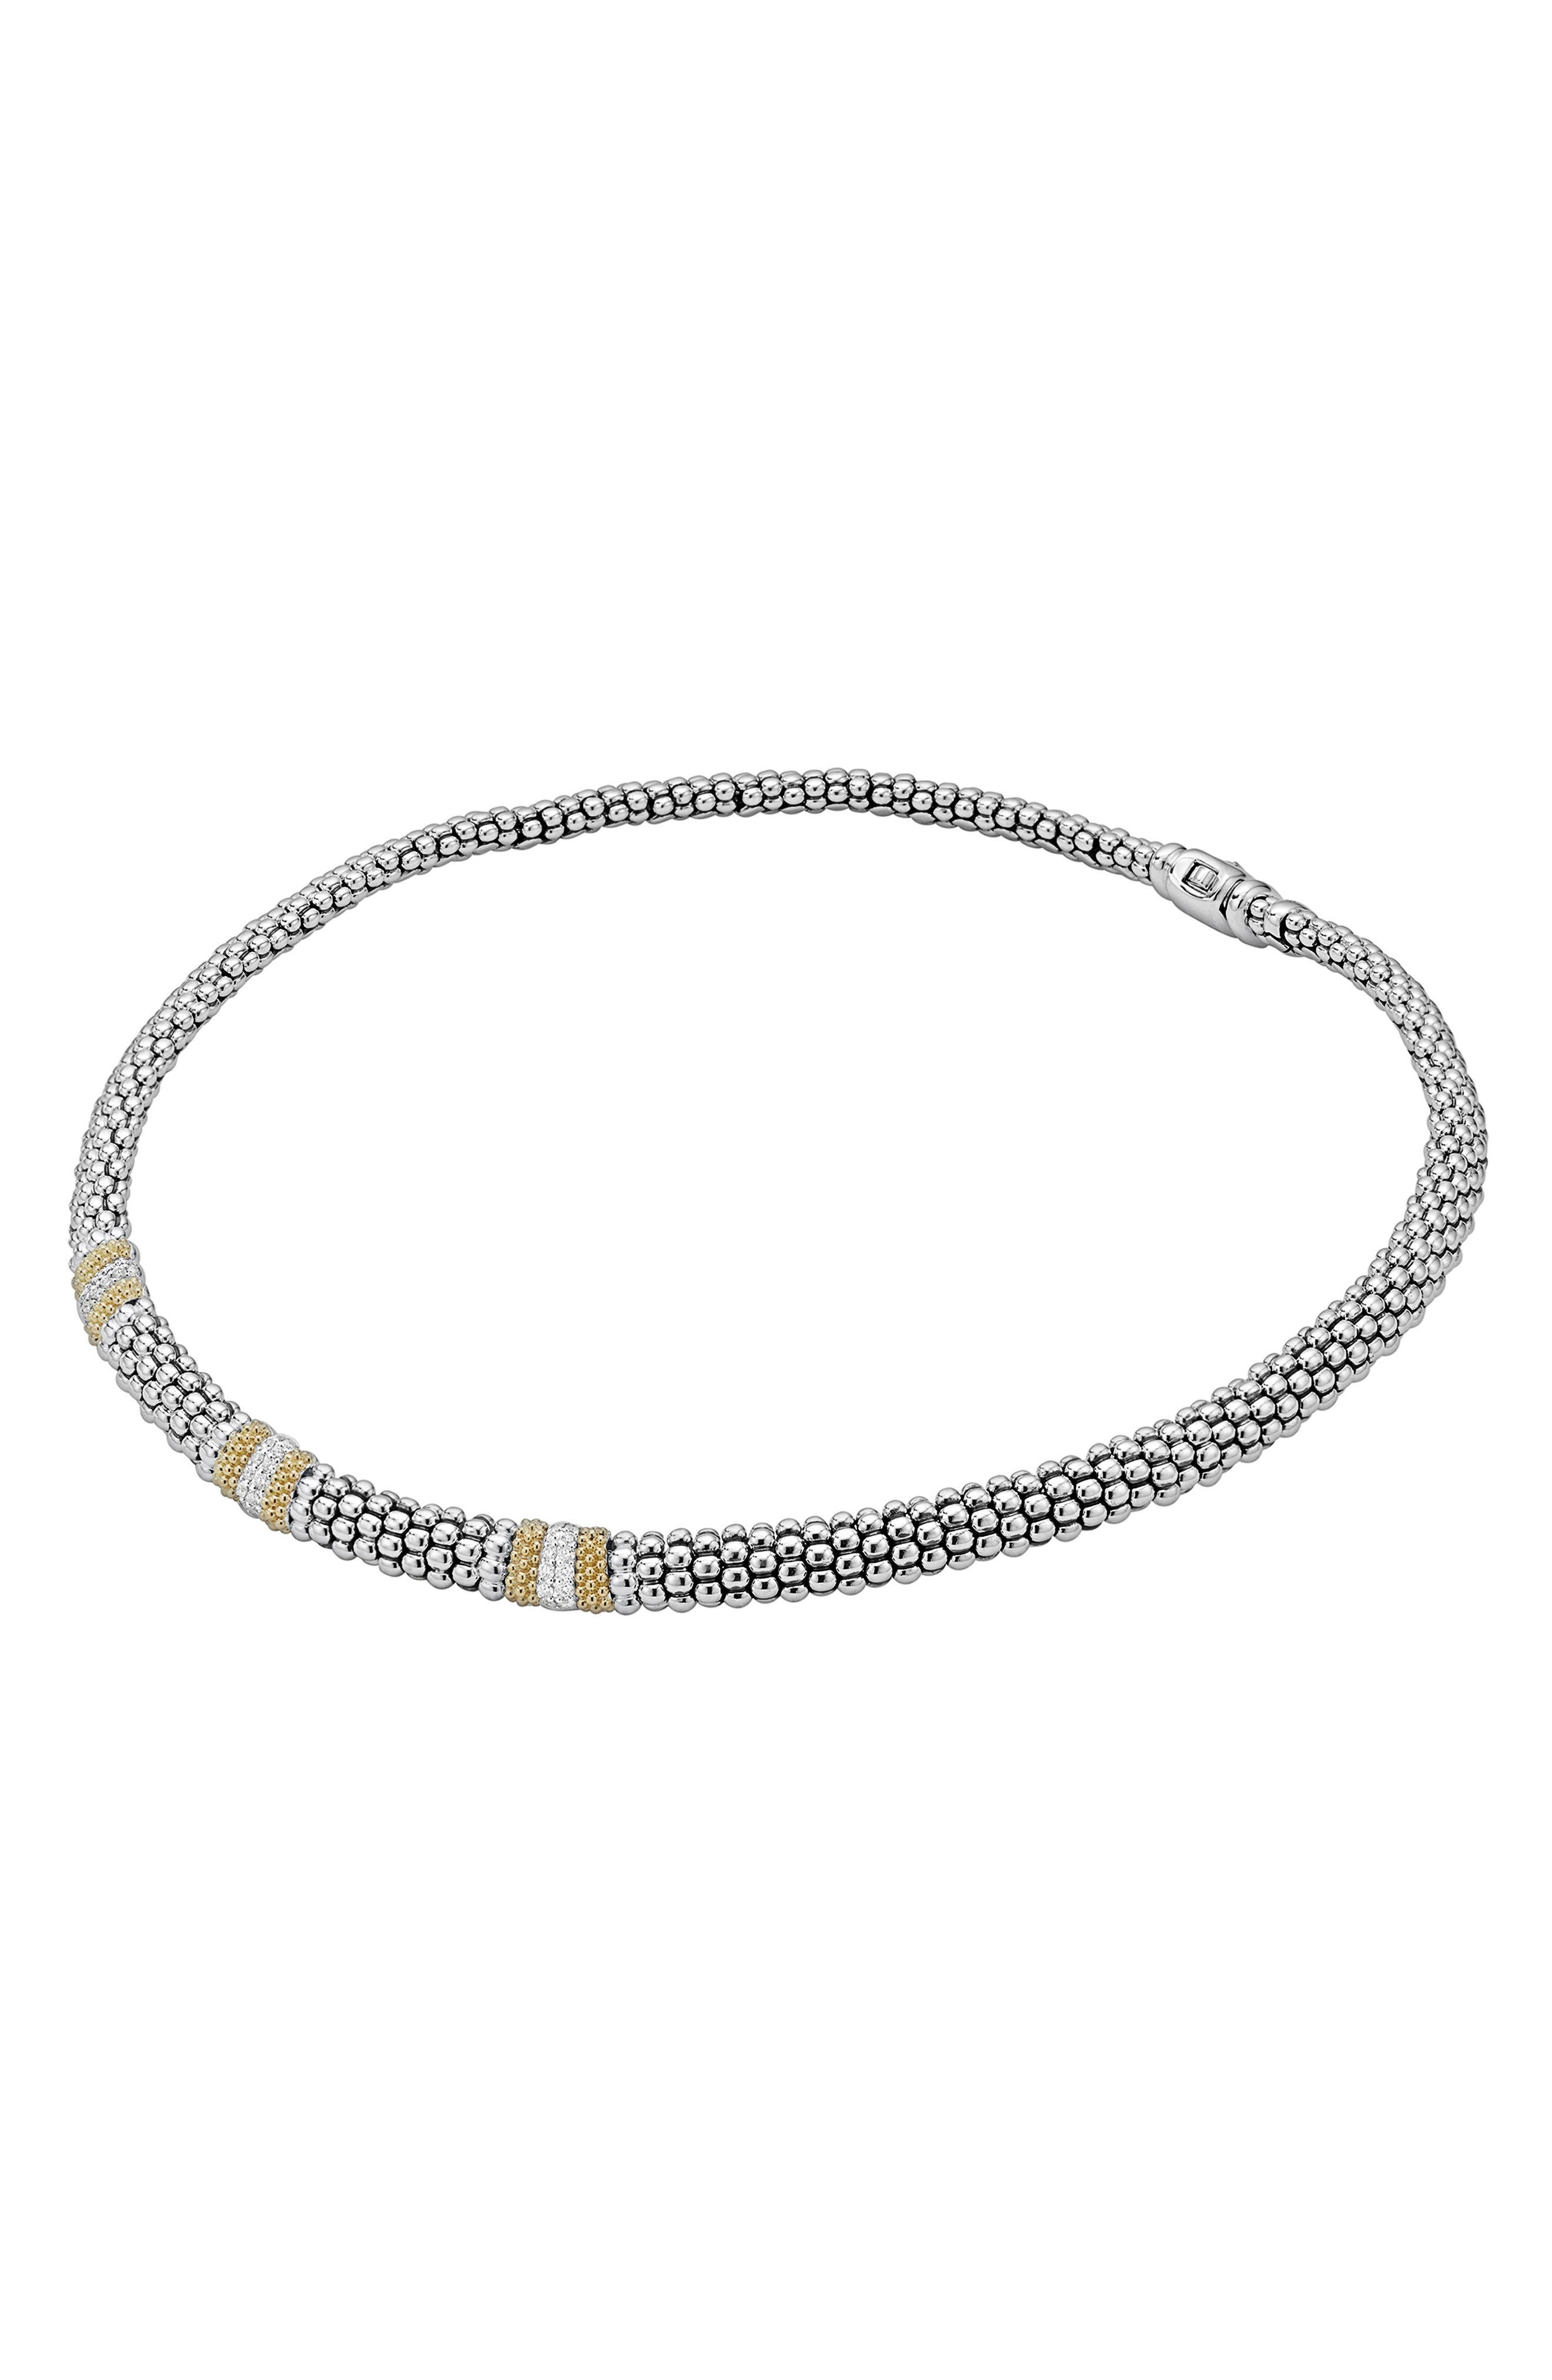 Diamond Lux Triple Station Collar Necklace,                             Alternate thumbnail 4, color,                             SILVER/ DIAMOND